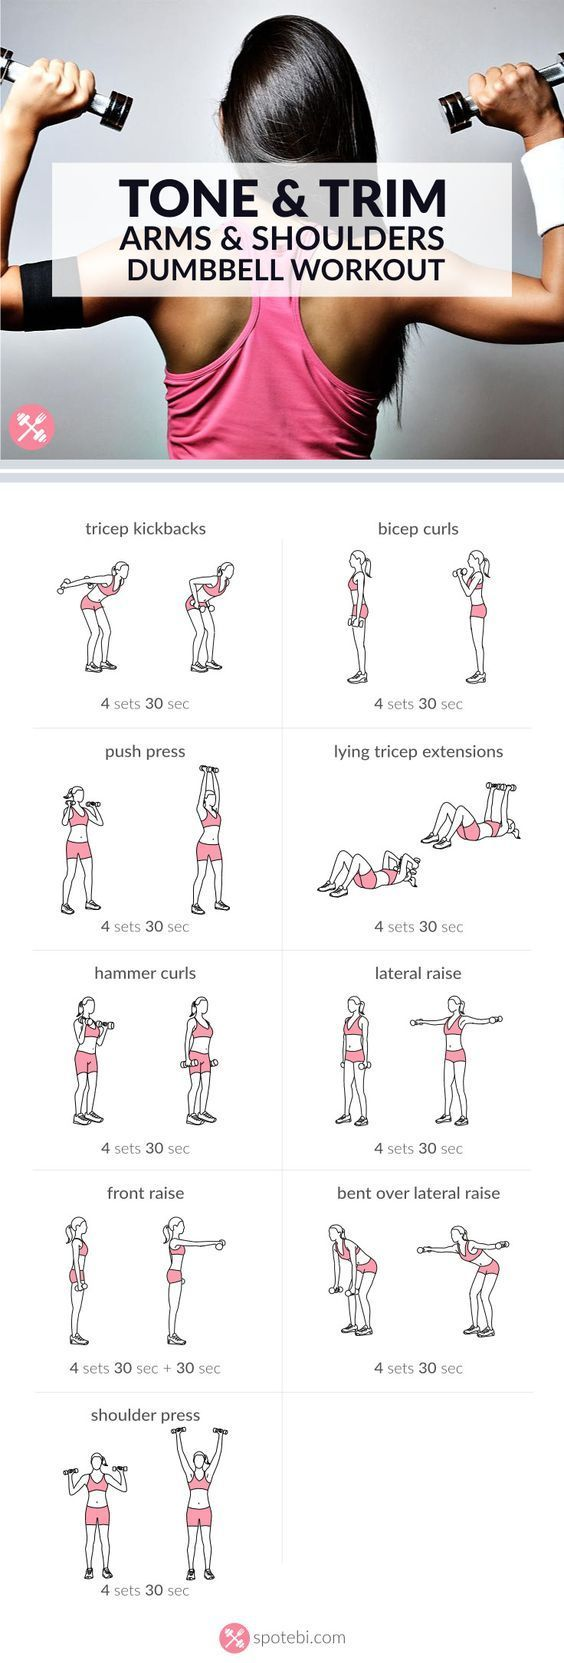 Arm & Shoulders Dumbbell Workout. Each exercises for 30 sec or complete 15-20 repetitions. Rest 30-60 sec, repeat circuit 4 times. Total of 20 mins::